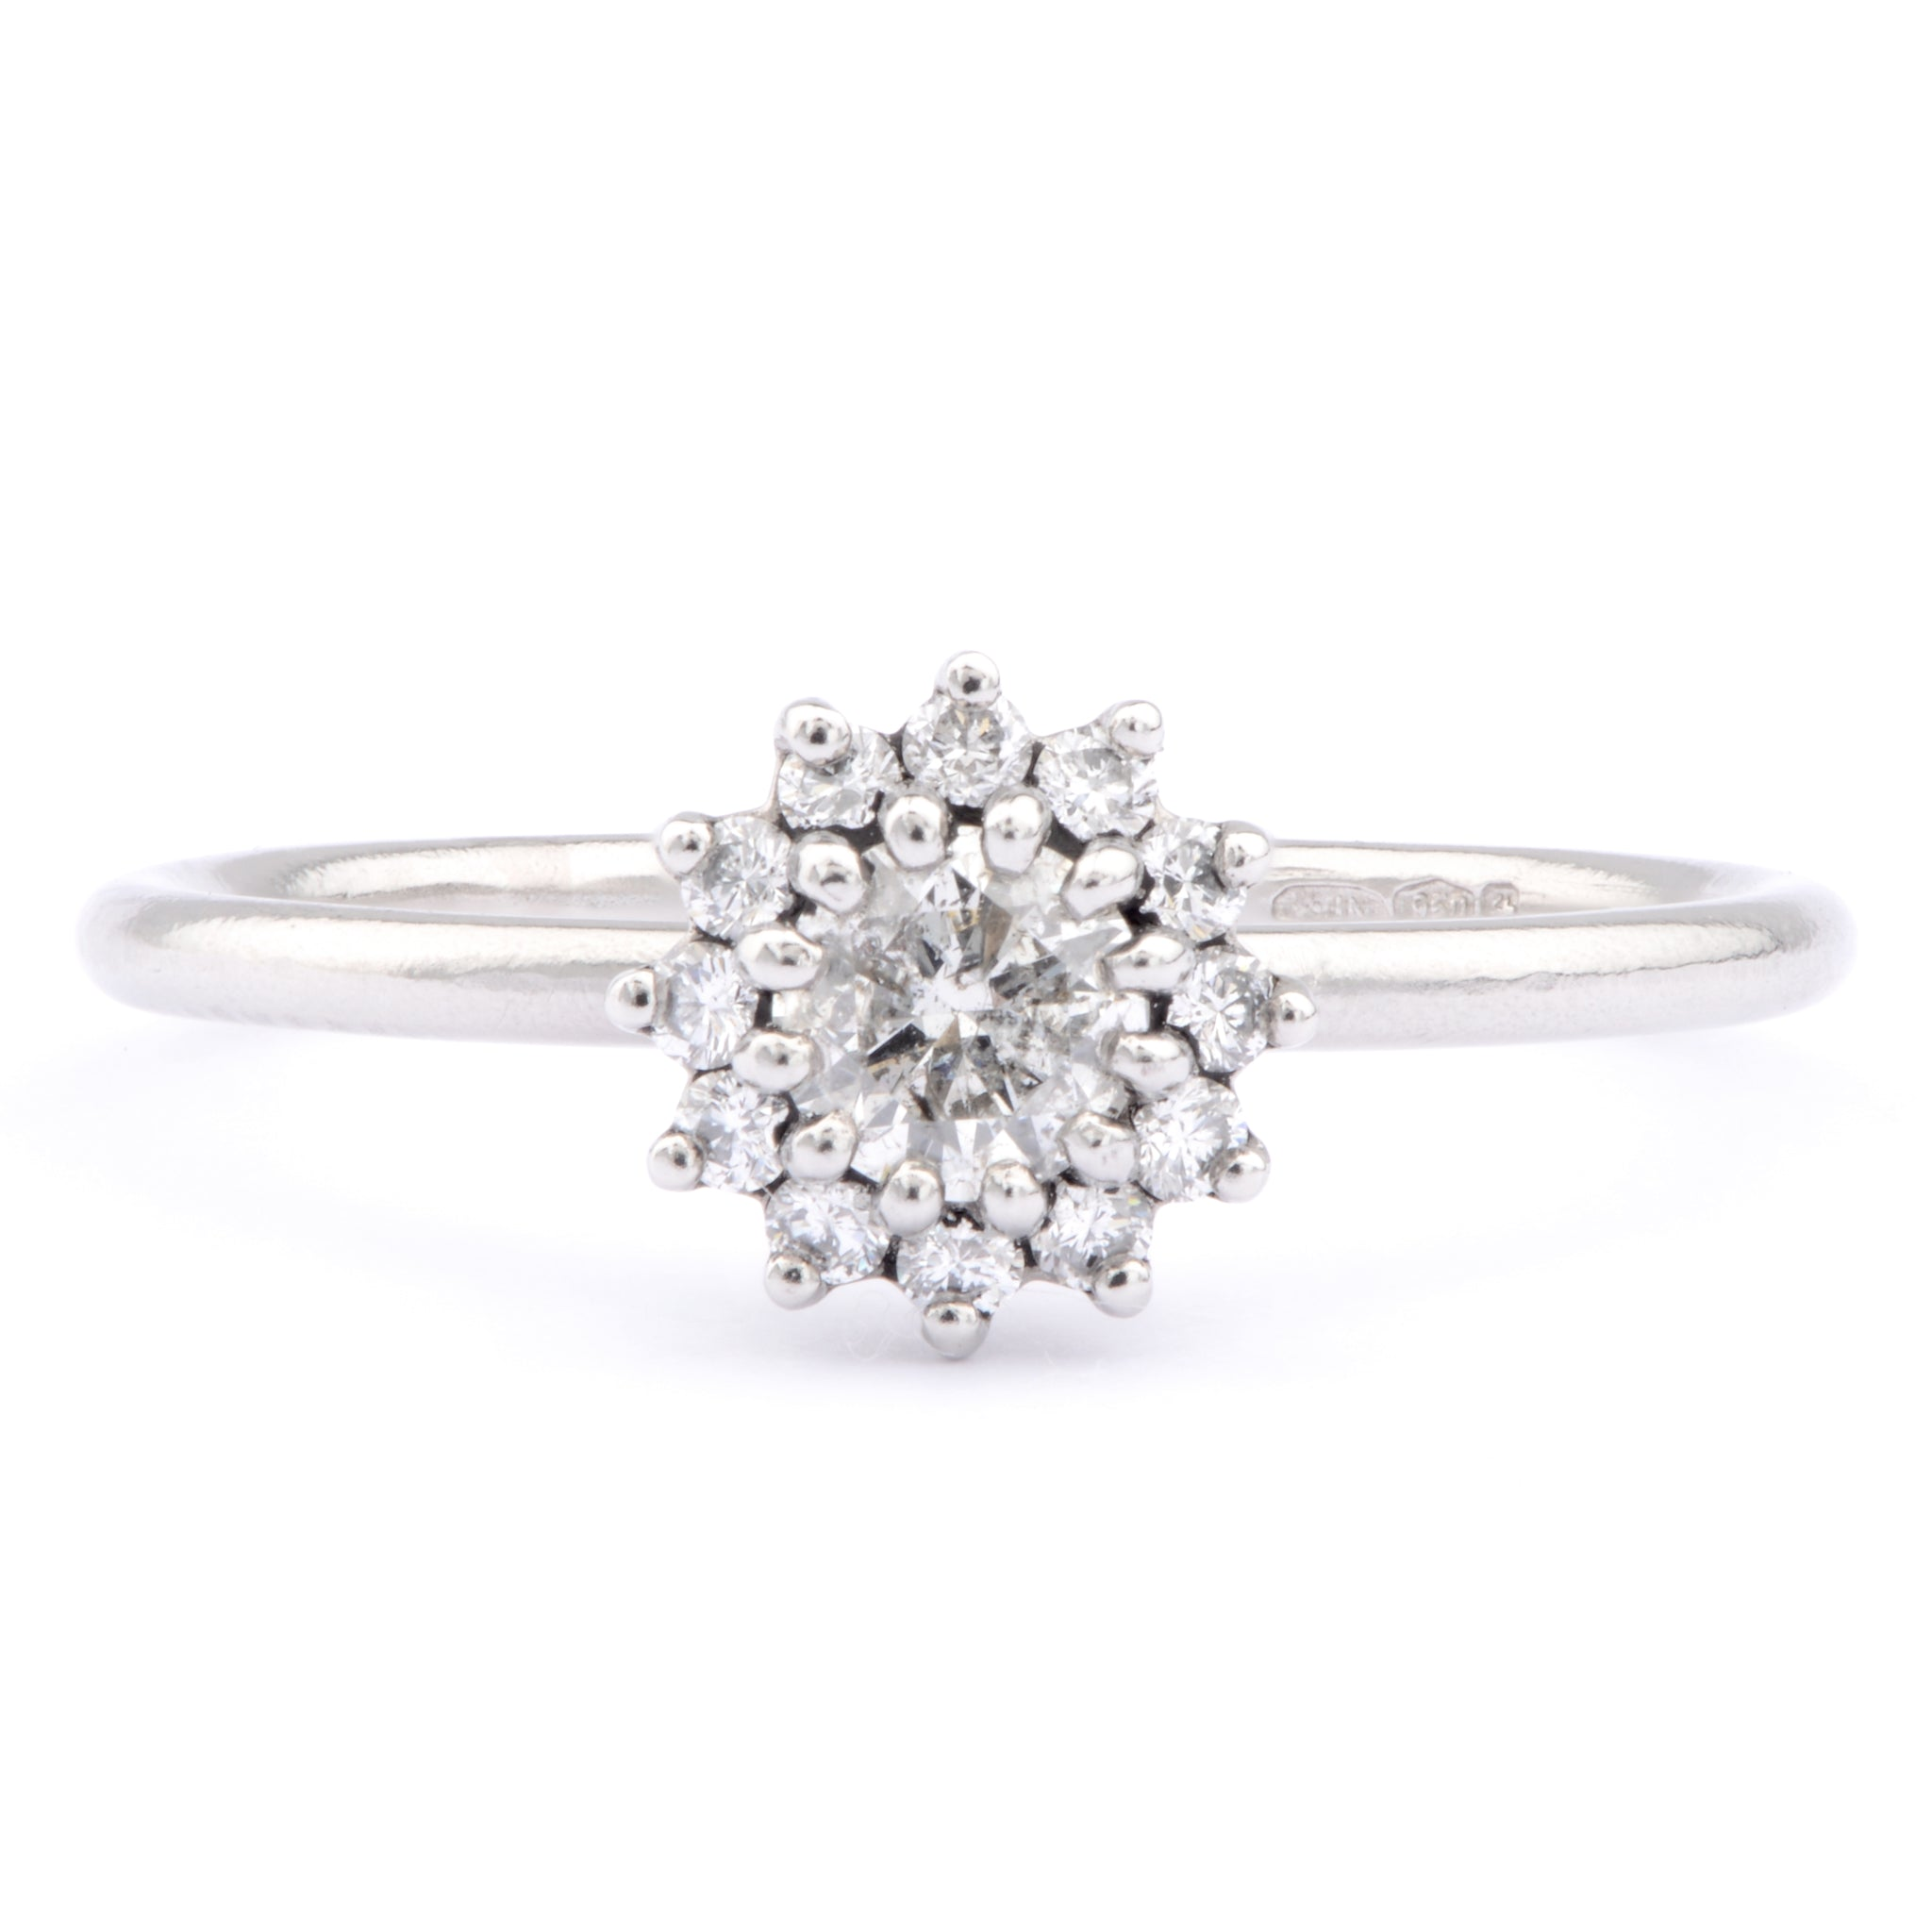 30pt Salt and Pepper Diamond and Platinum Ring - James Newman Jewellery